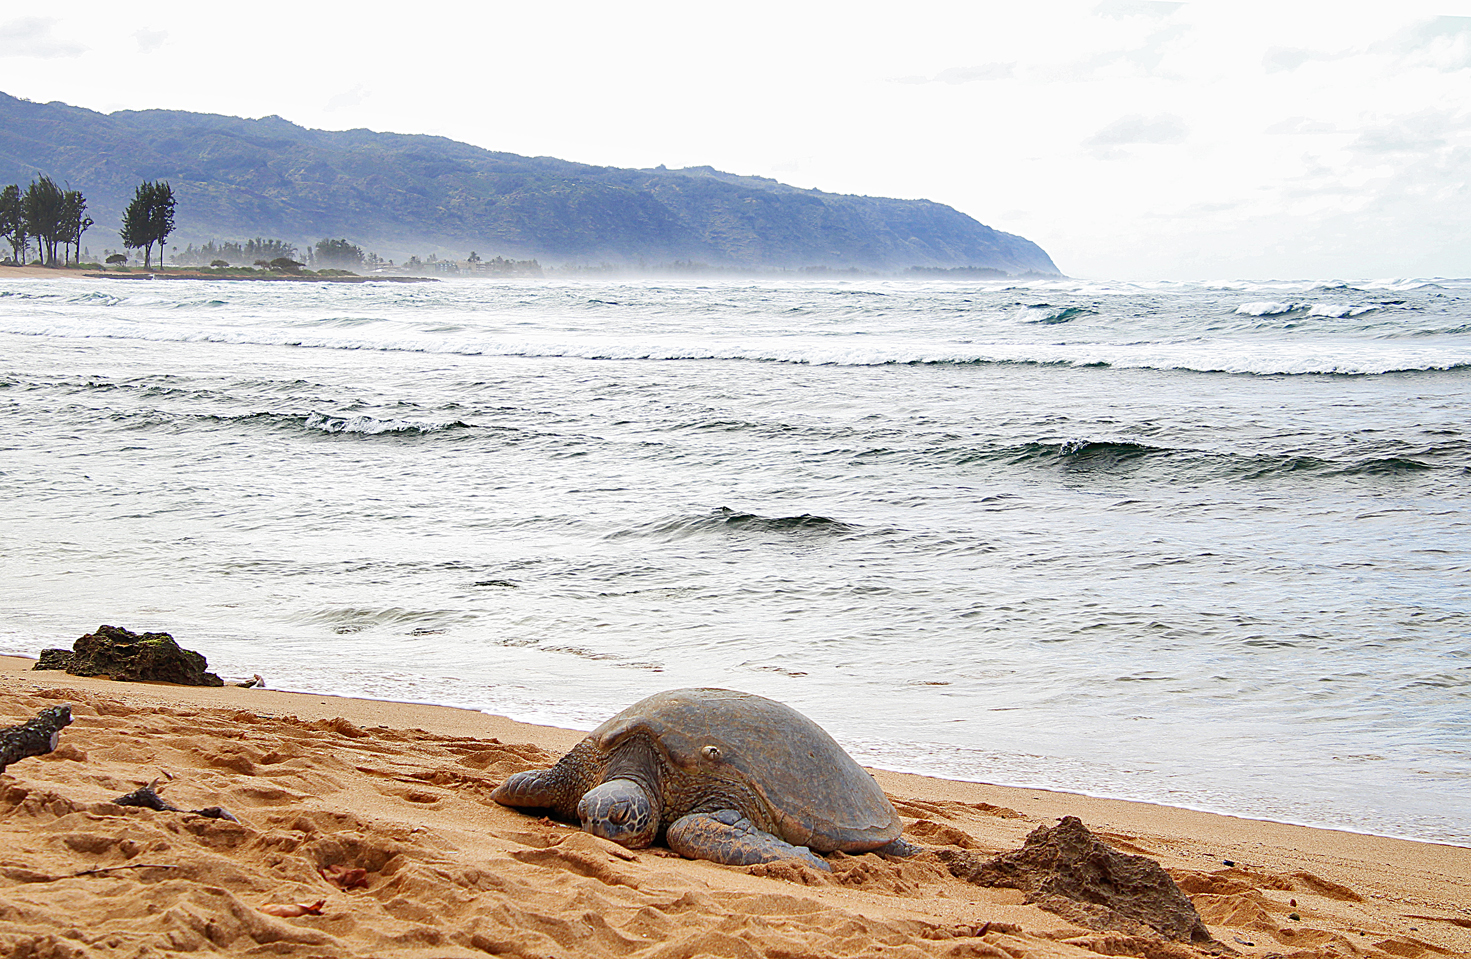 A Green Sea Turtle on the beach on the North Shore.